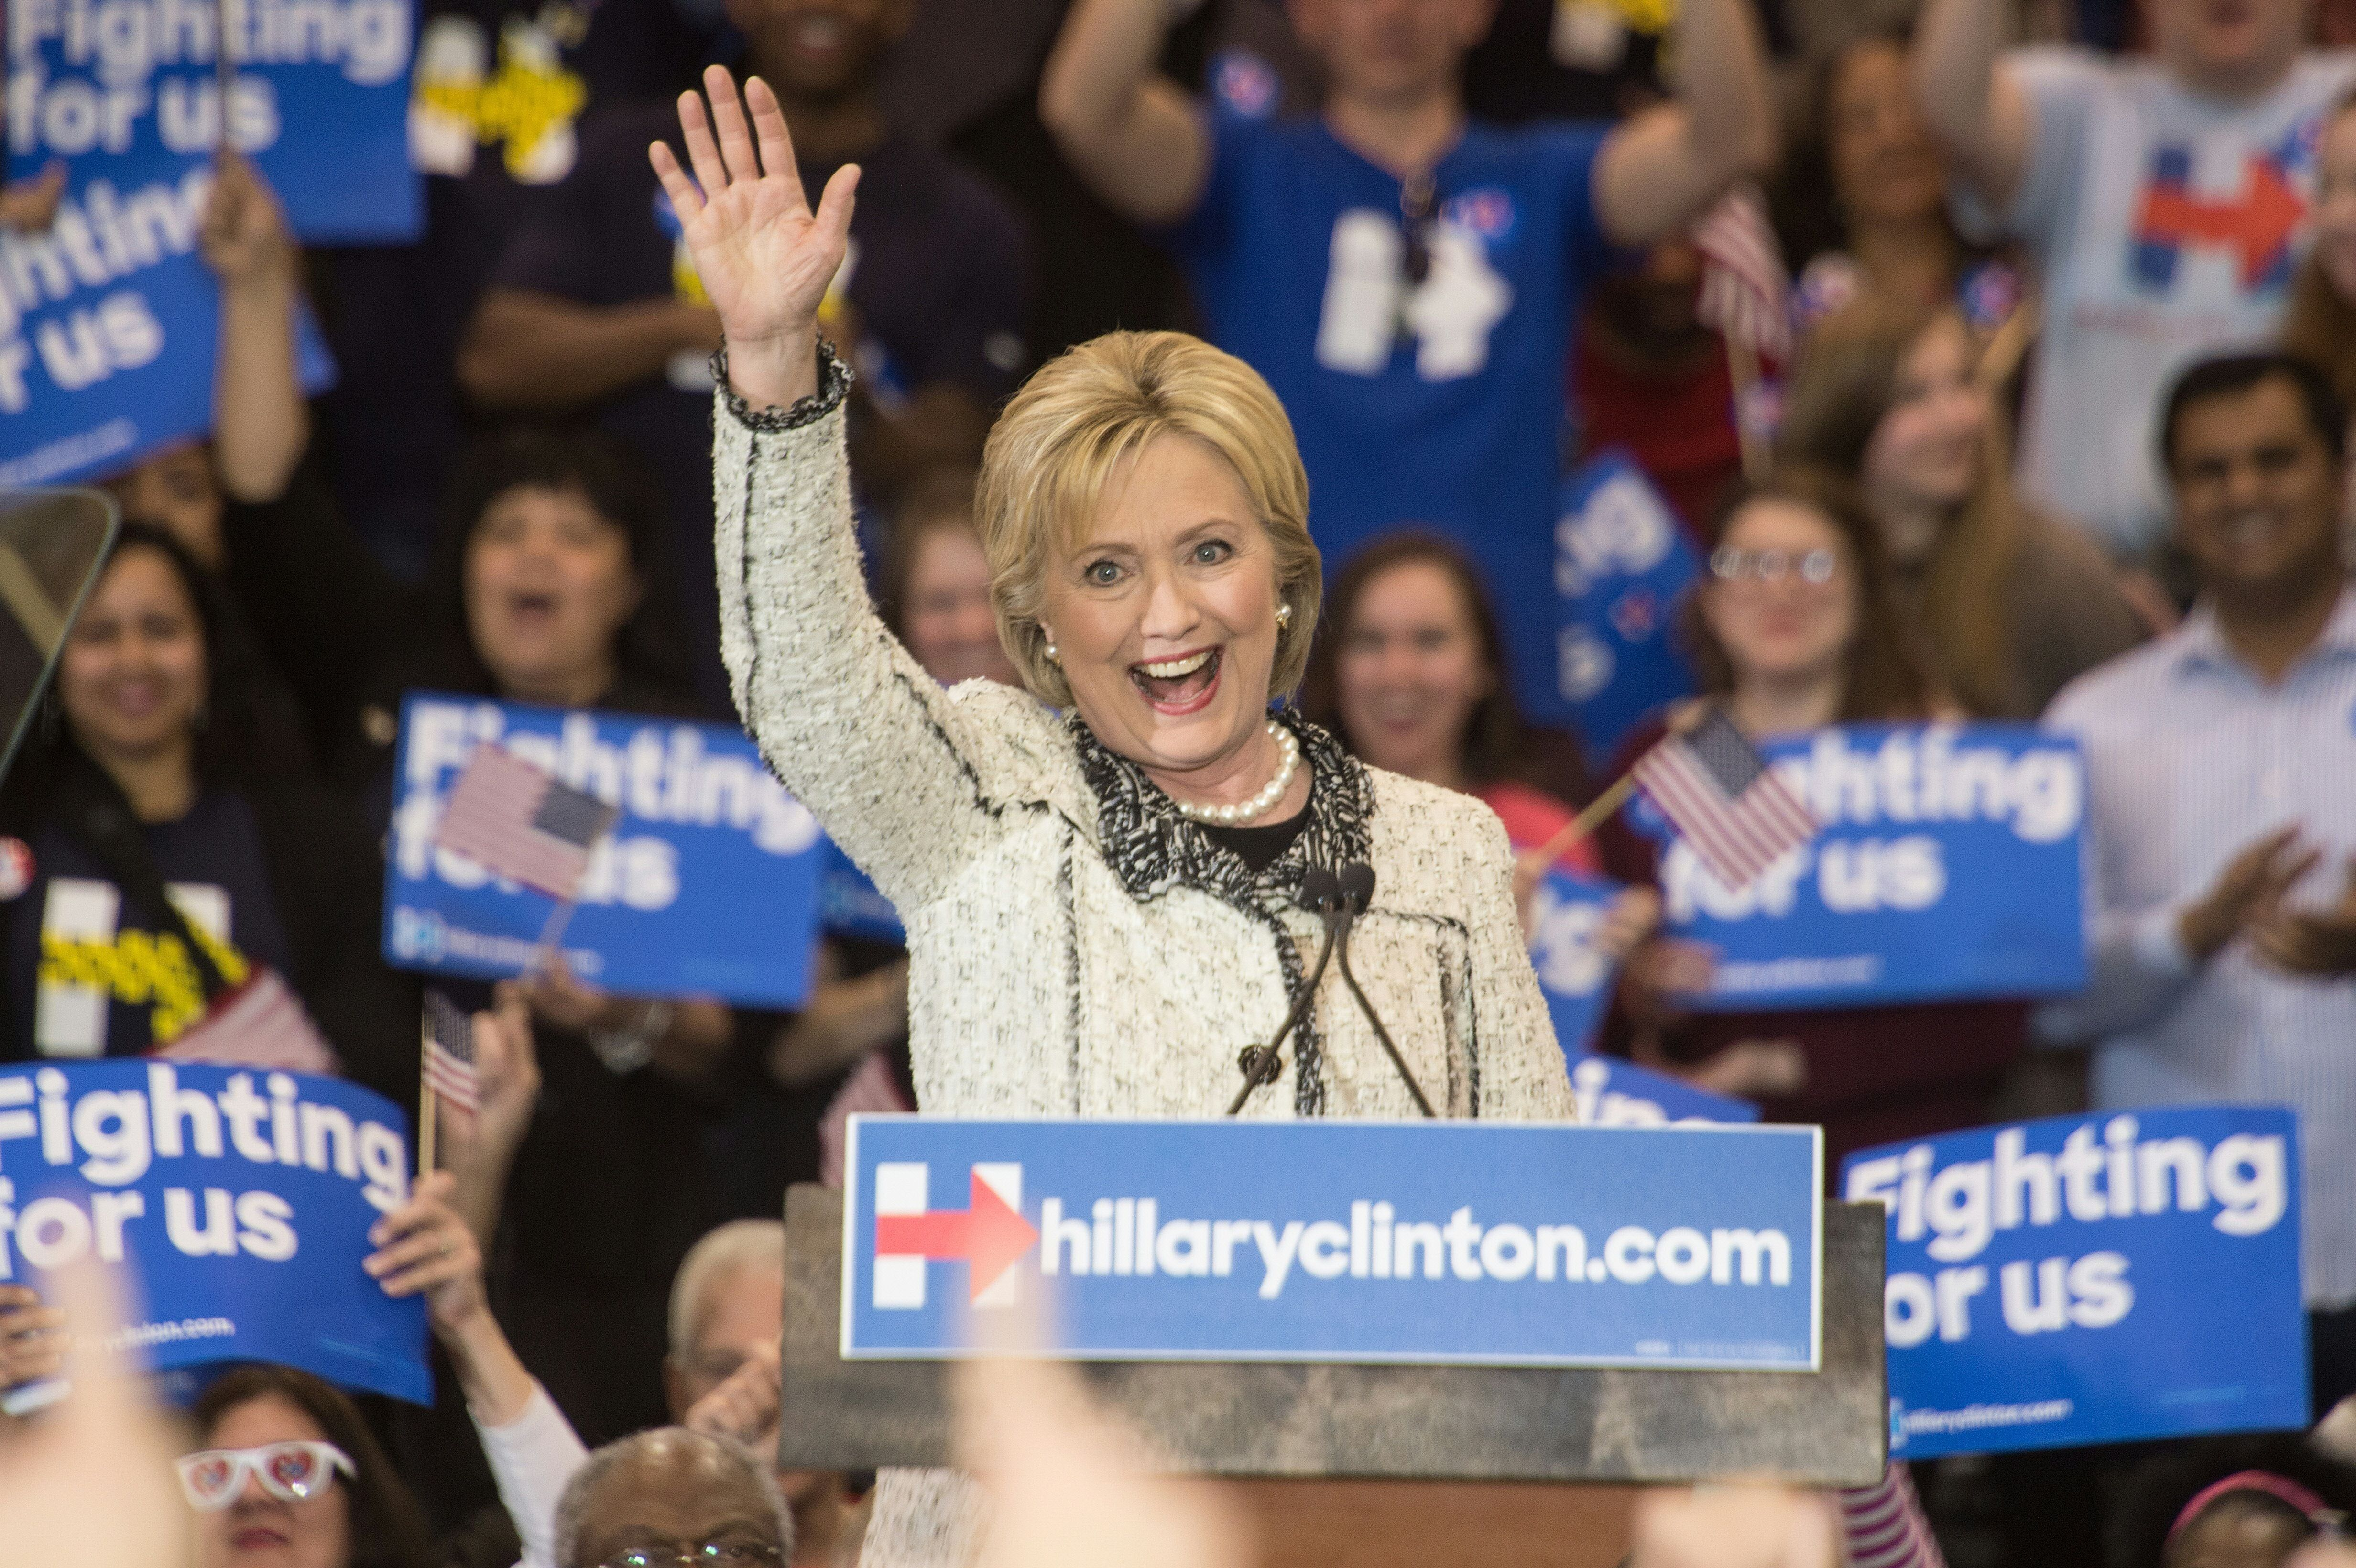 US Democratic presidential candidate Hillary Clinton waves after addressing a primary night rally in Columbia, South Carolina, on February 27, 2016. Clinton defeated Bernie Sanders by an overwhelming margin in the Democratic primary in South Carolina, projections showed, seizing momentum ahead of the most important day of the nomination race: next week's 'Super Tuesday' contests. / AFP / Nicholas Kamm        (Photo credit should read NICHOLAS KAMM/AFP/Getty Images)